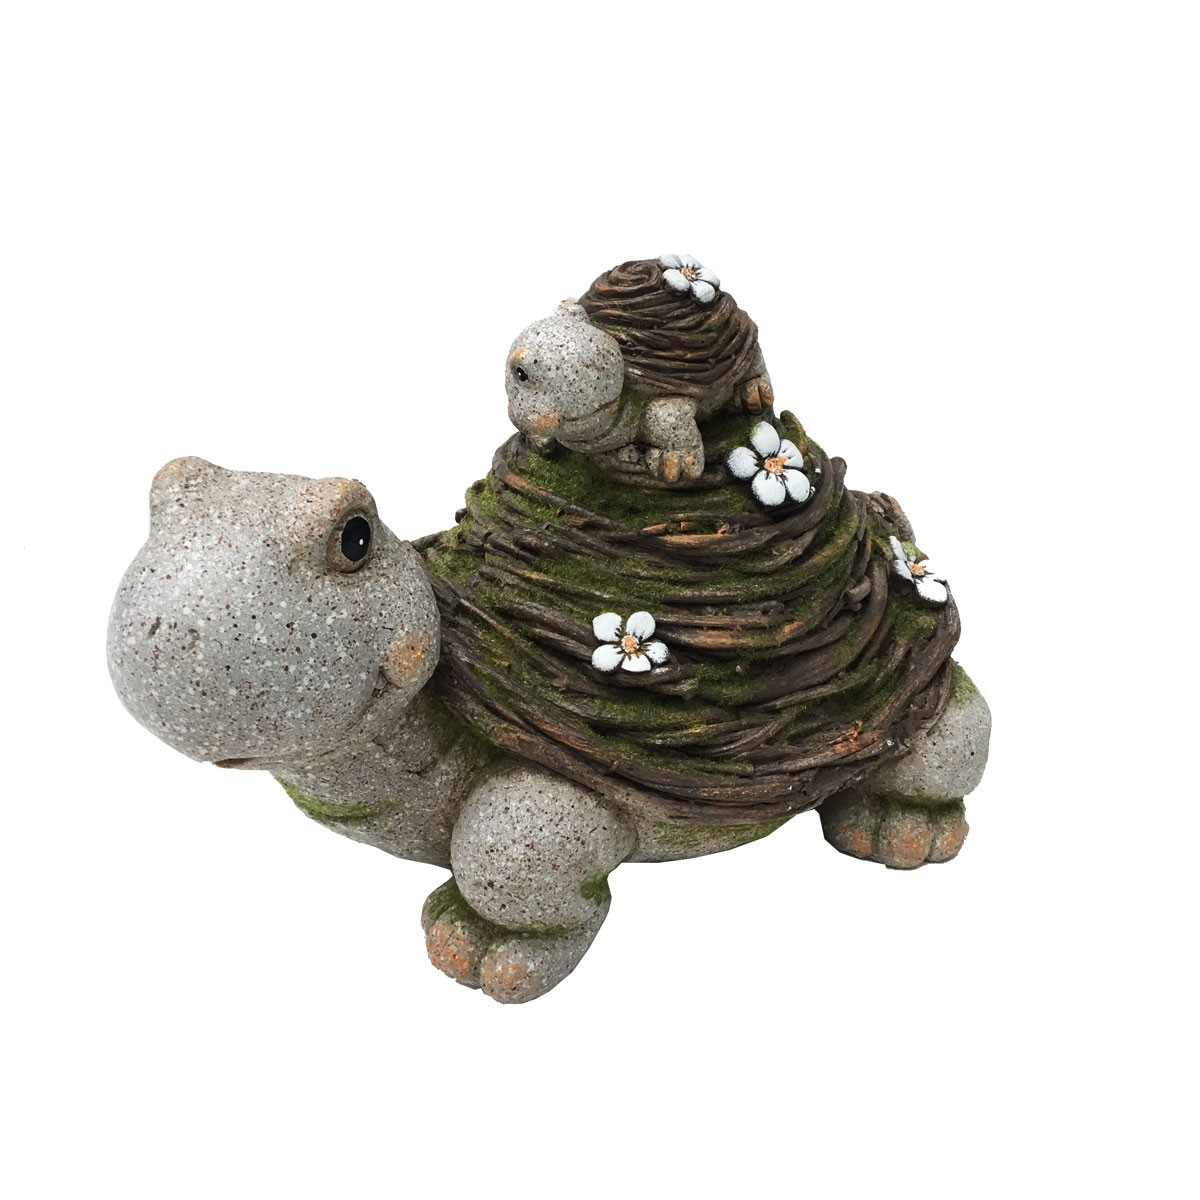 Delightful turtle mother and son duo making their way to your garden. Incorporating a few decorative details such as flowers on their shells, and stone like materials.